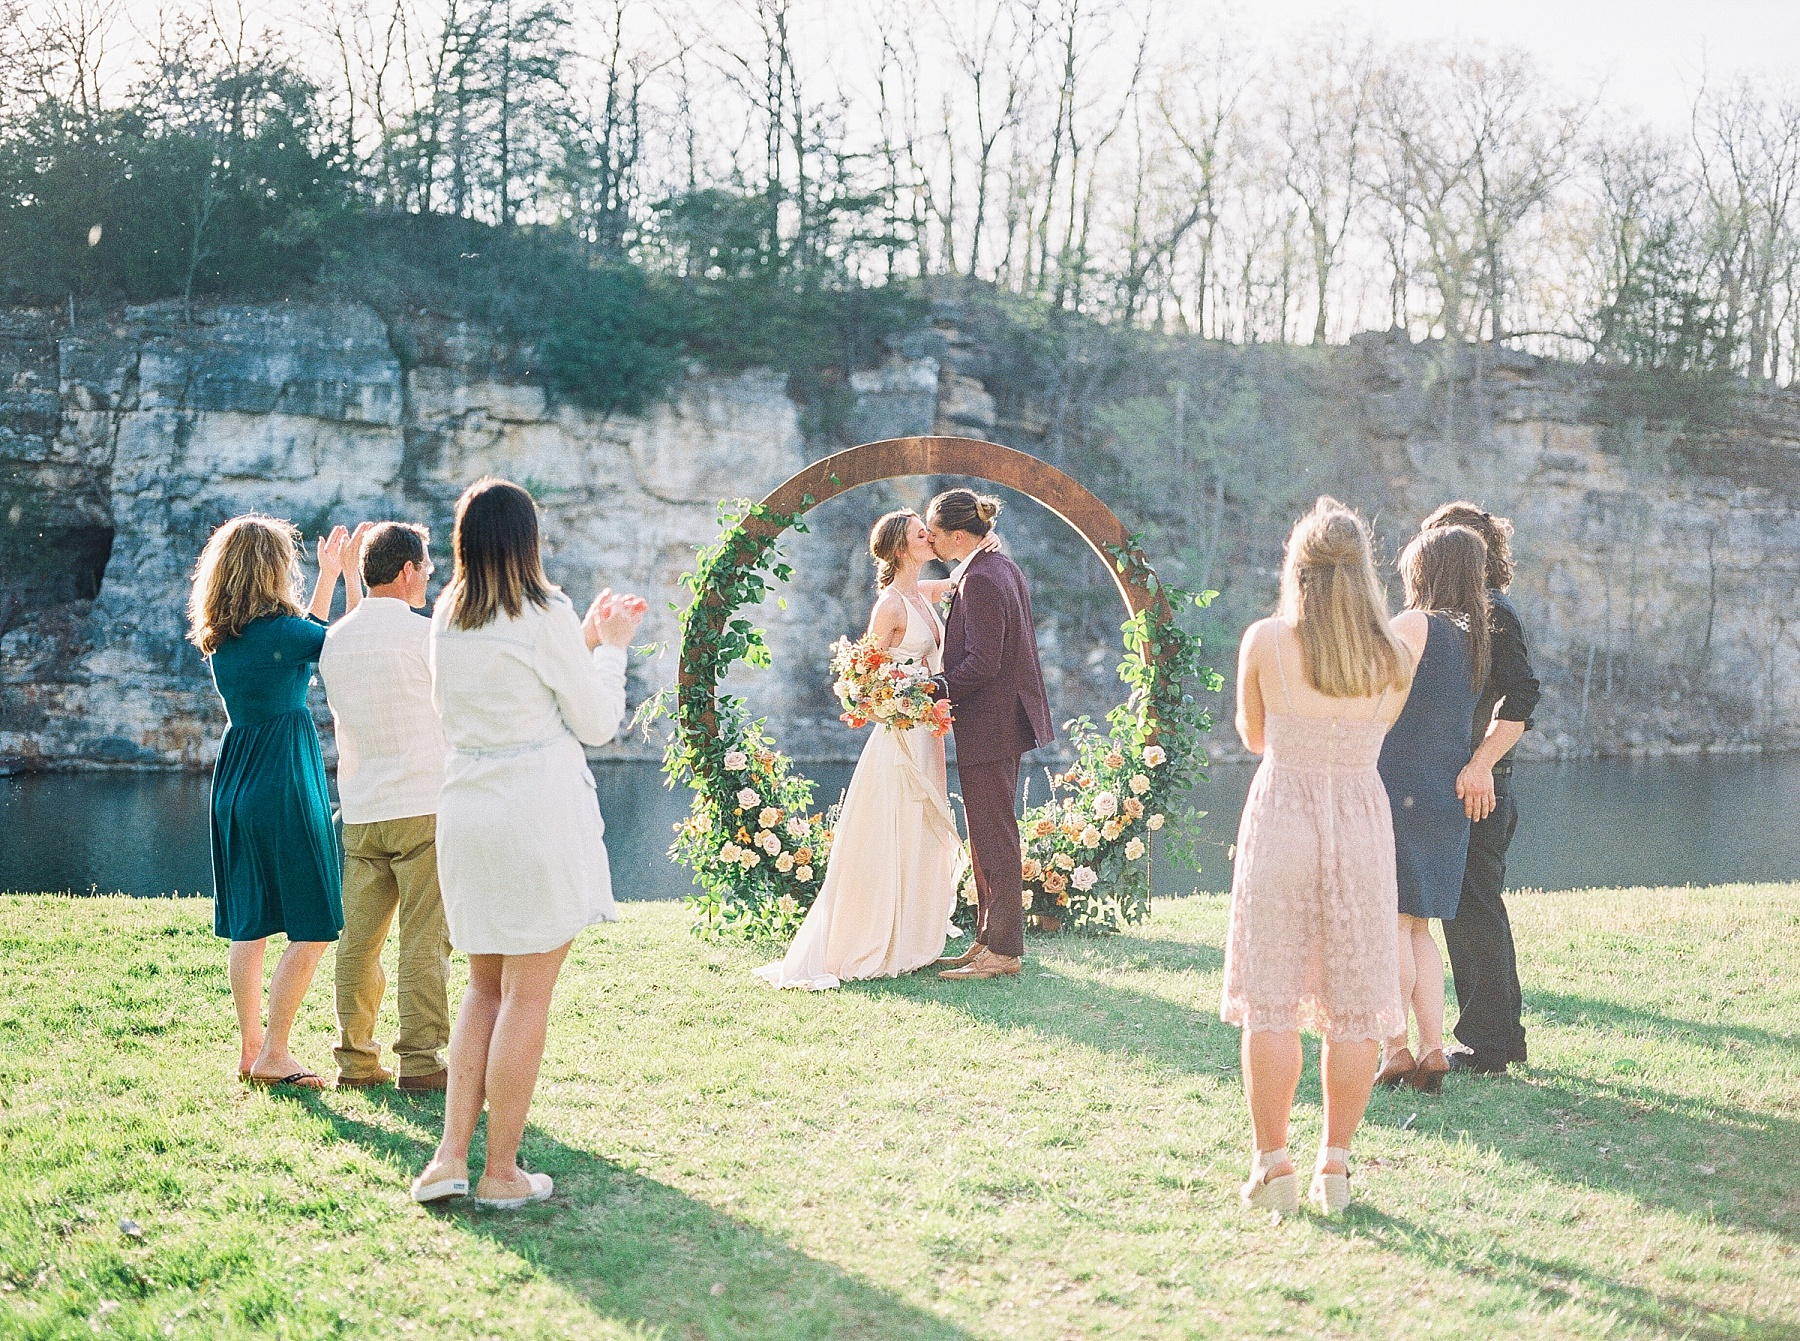 Intimate Spanish and French Inspired Destination Wedding with Lakeside Dinner Party at Dusk at Wildcliff by Kelsi Kliethermes Photography Best Missouri and Maui Wedding Photographer_0010.jpg